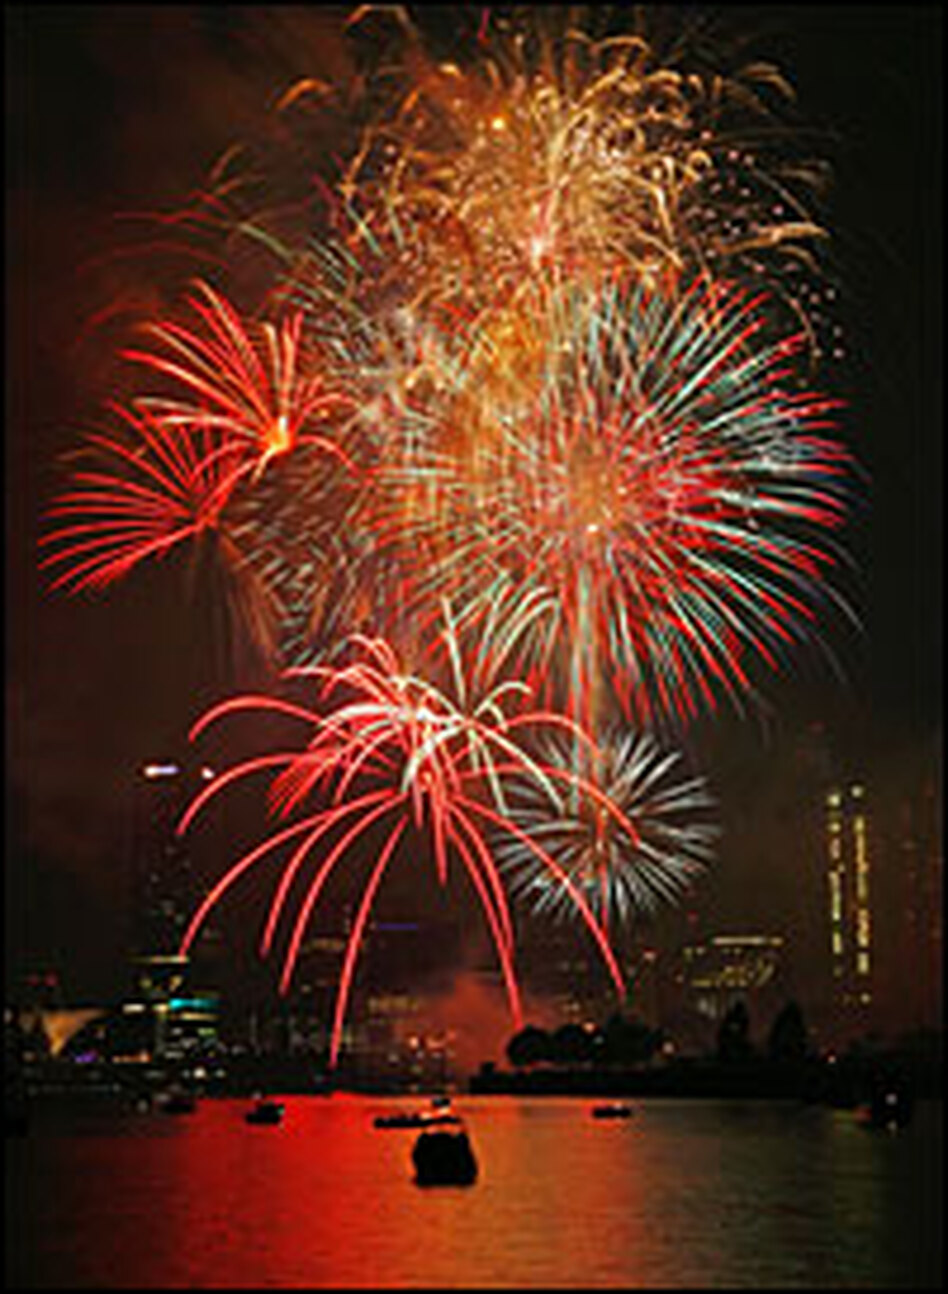 Fireworks shows in the U.S. are being canceled or scaled back as supply problems in China cause a fireworks shortage.